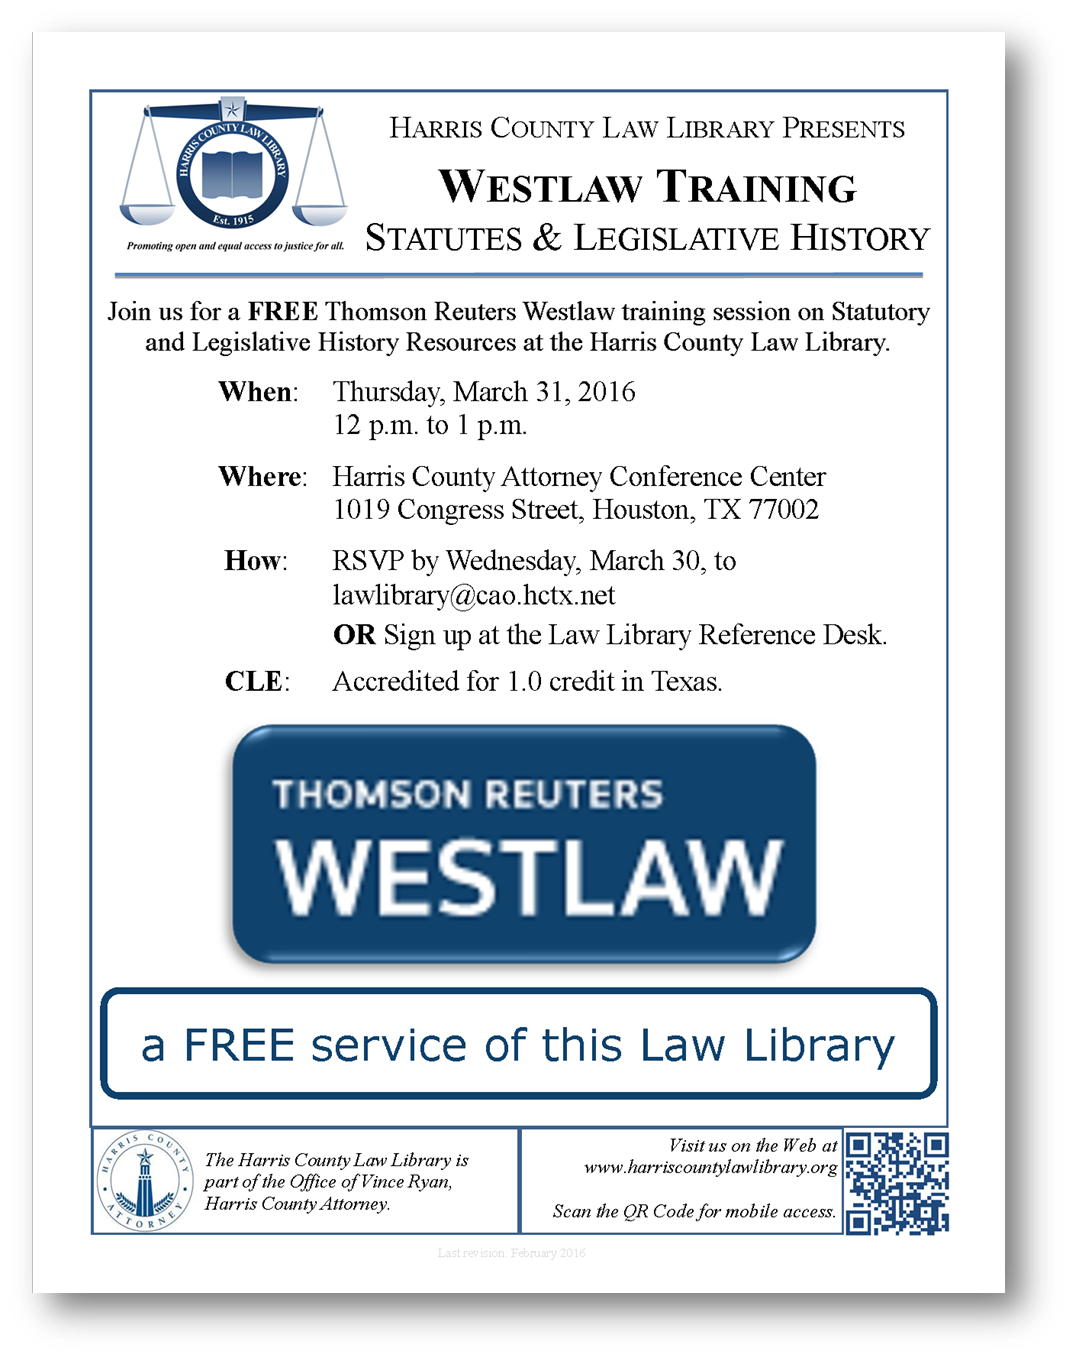 Link to PDF flyer for March 31 2016 Westlaw training at Harris County Law Library